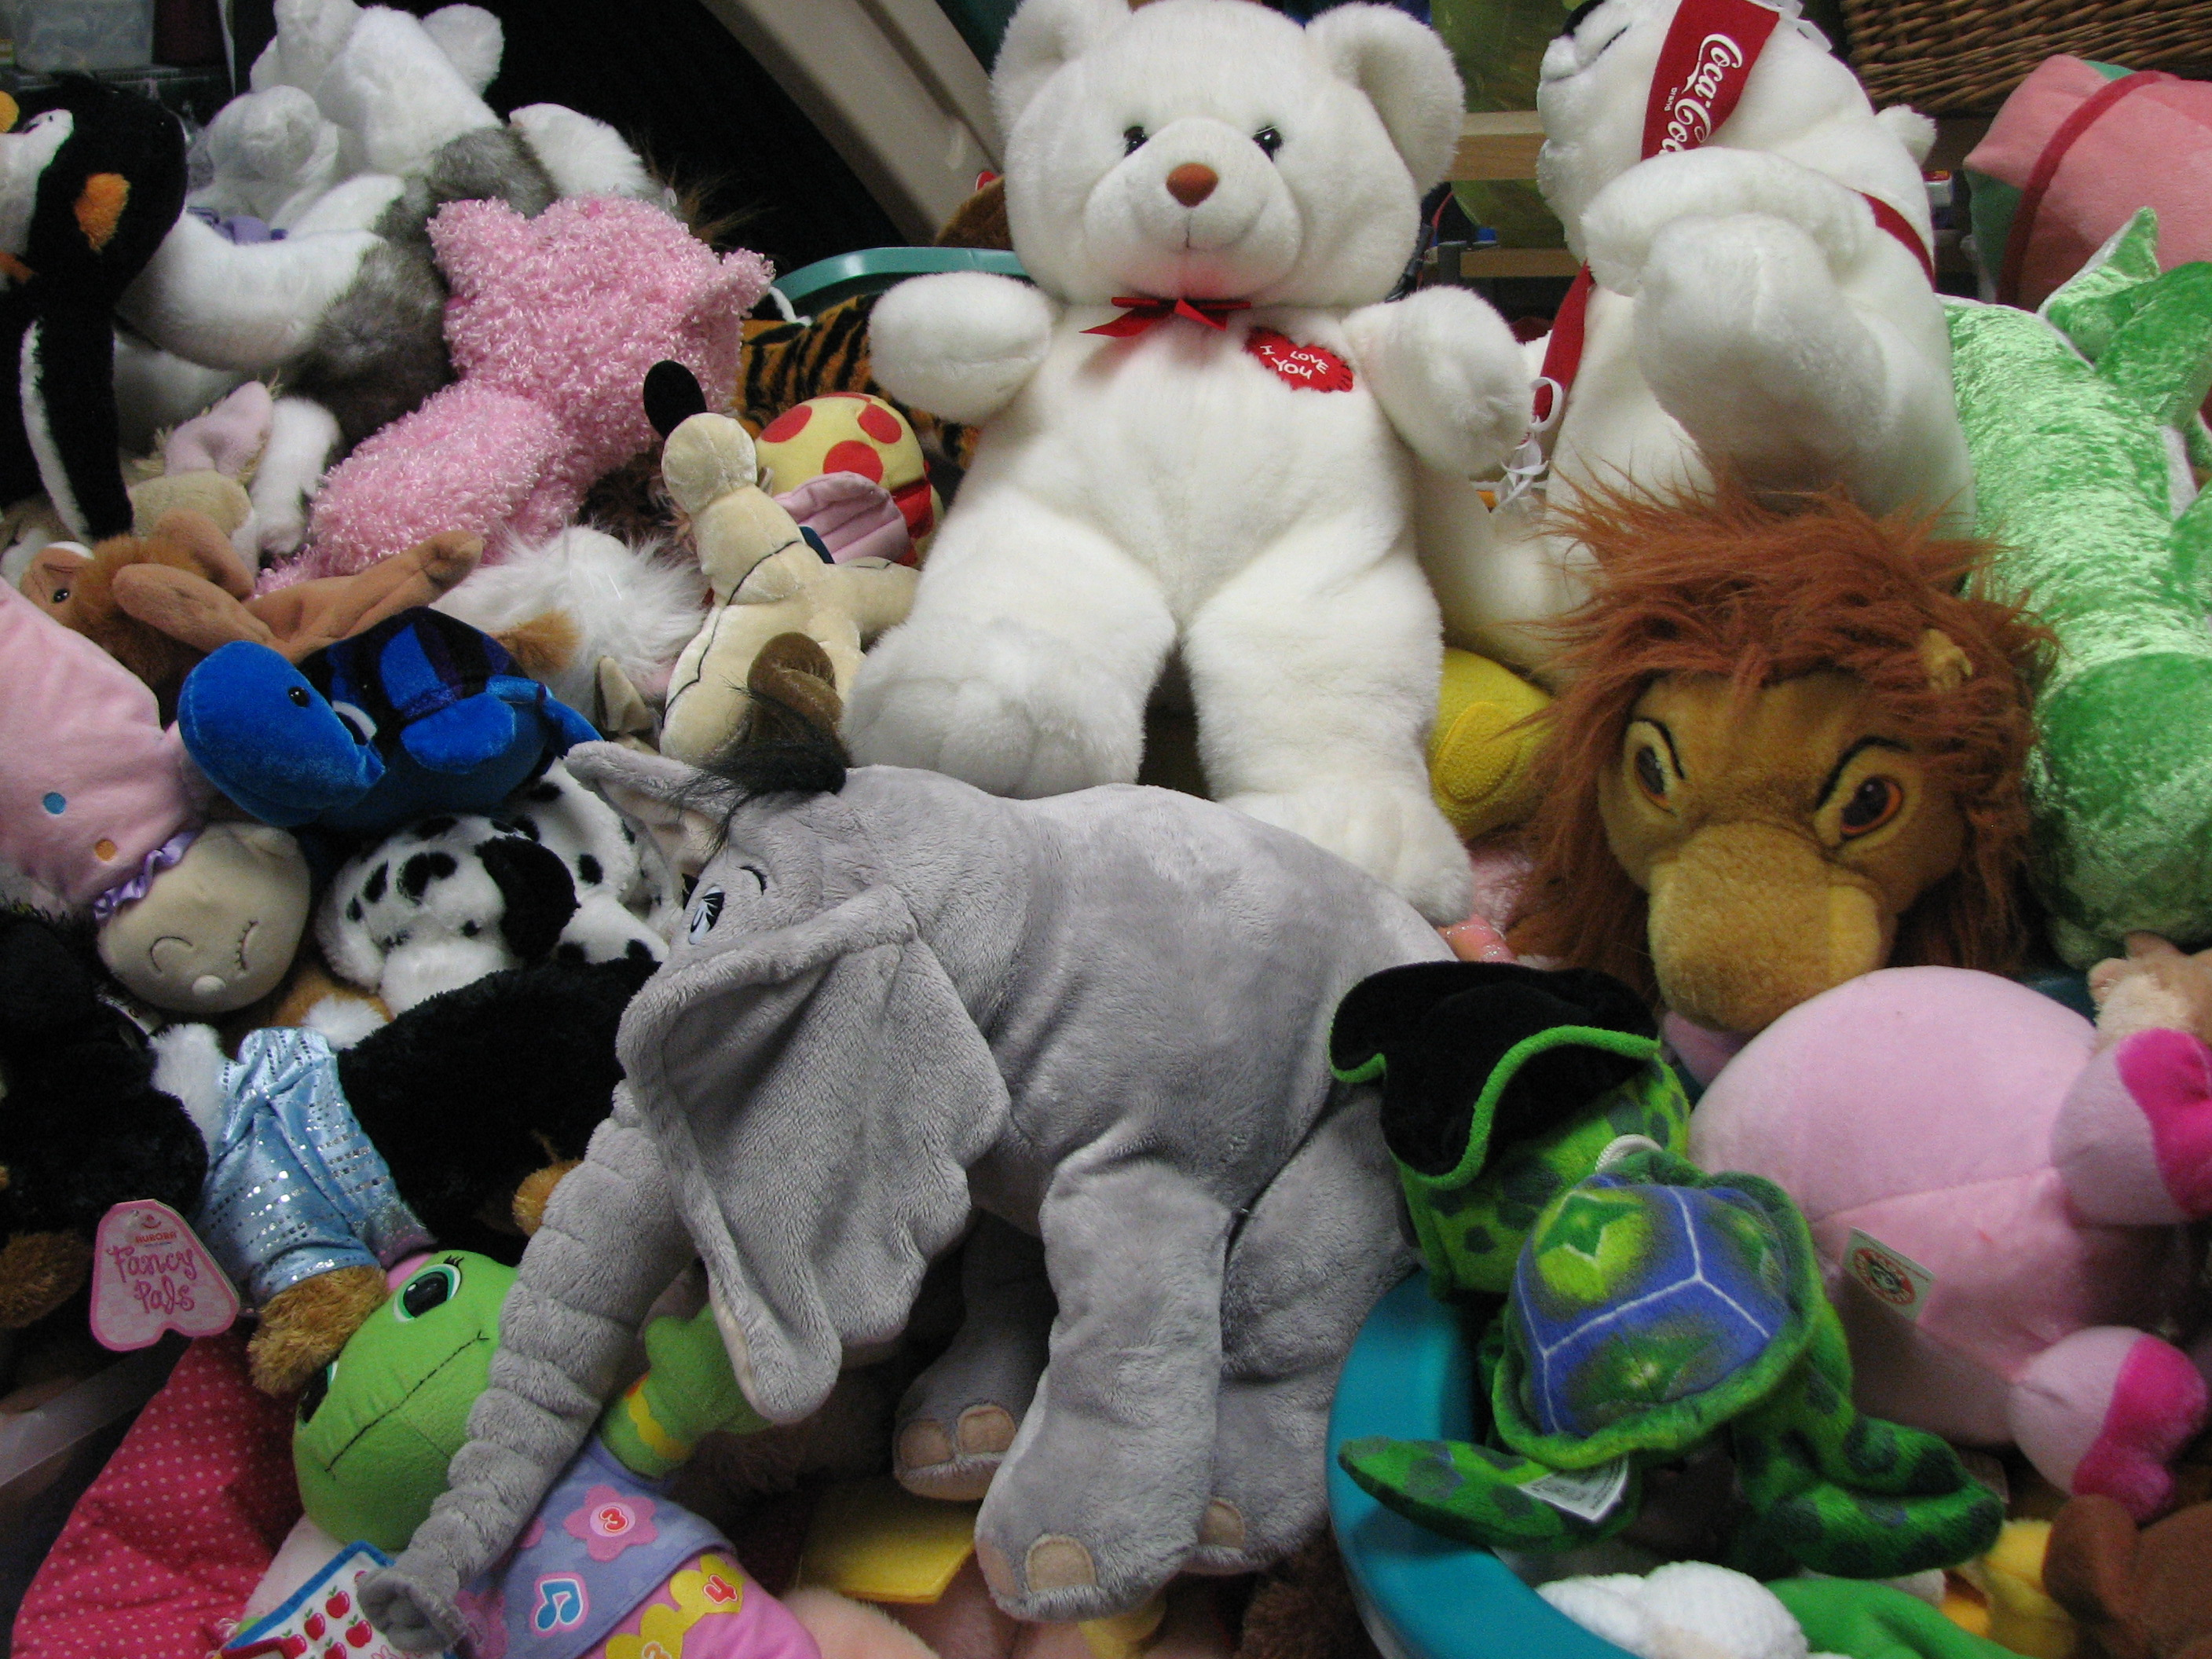 Plush Stuffed Toys : The march of stuffed animals powered by robots